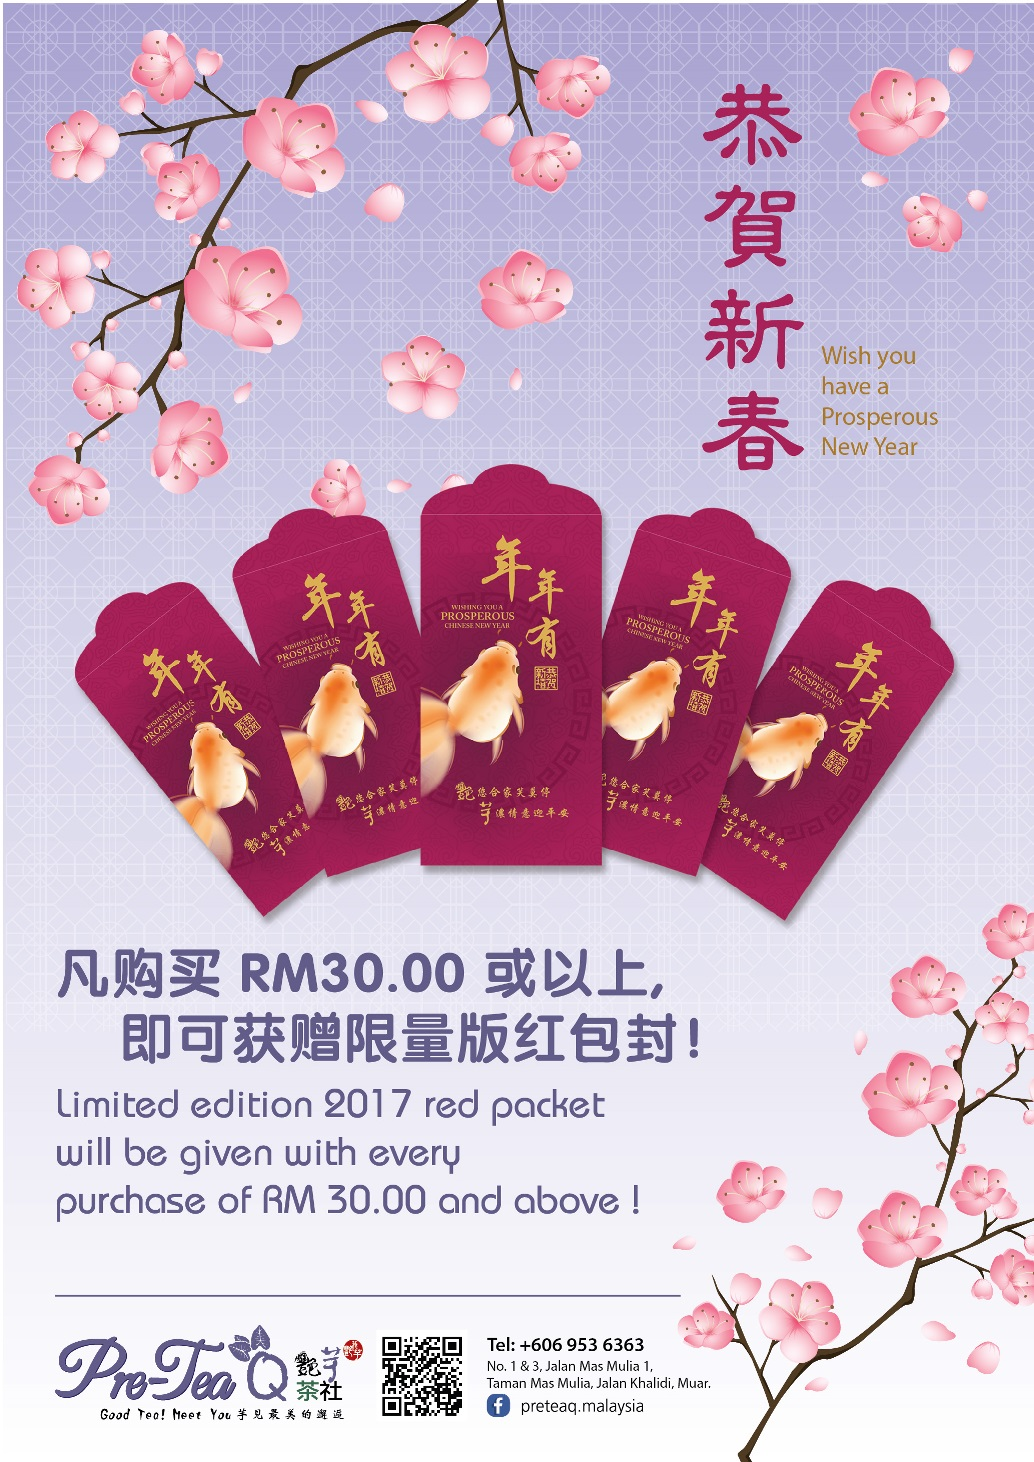 red packet redeem